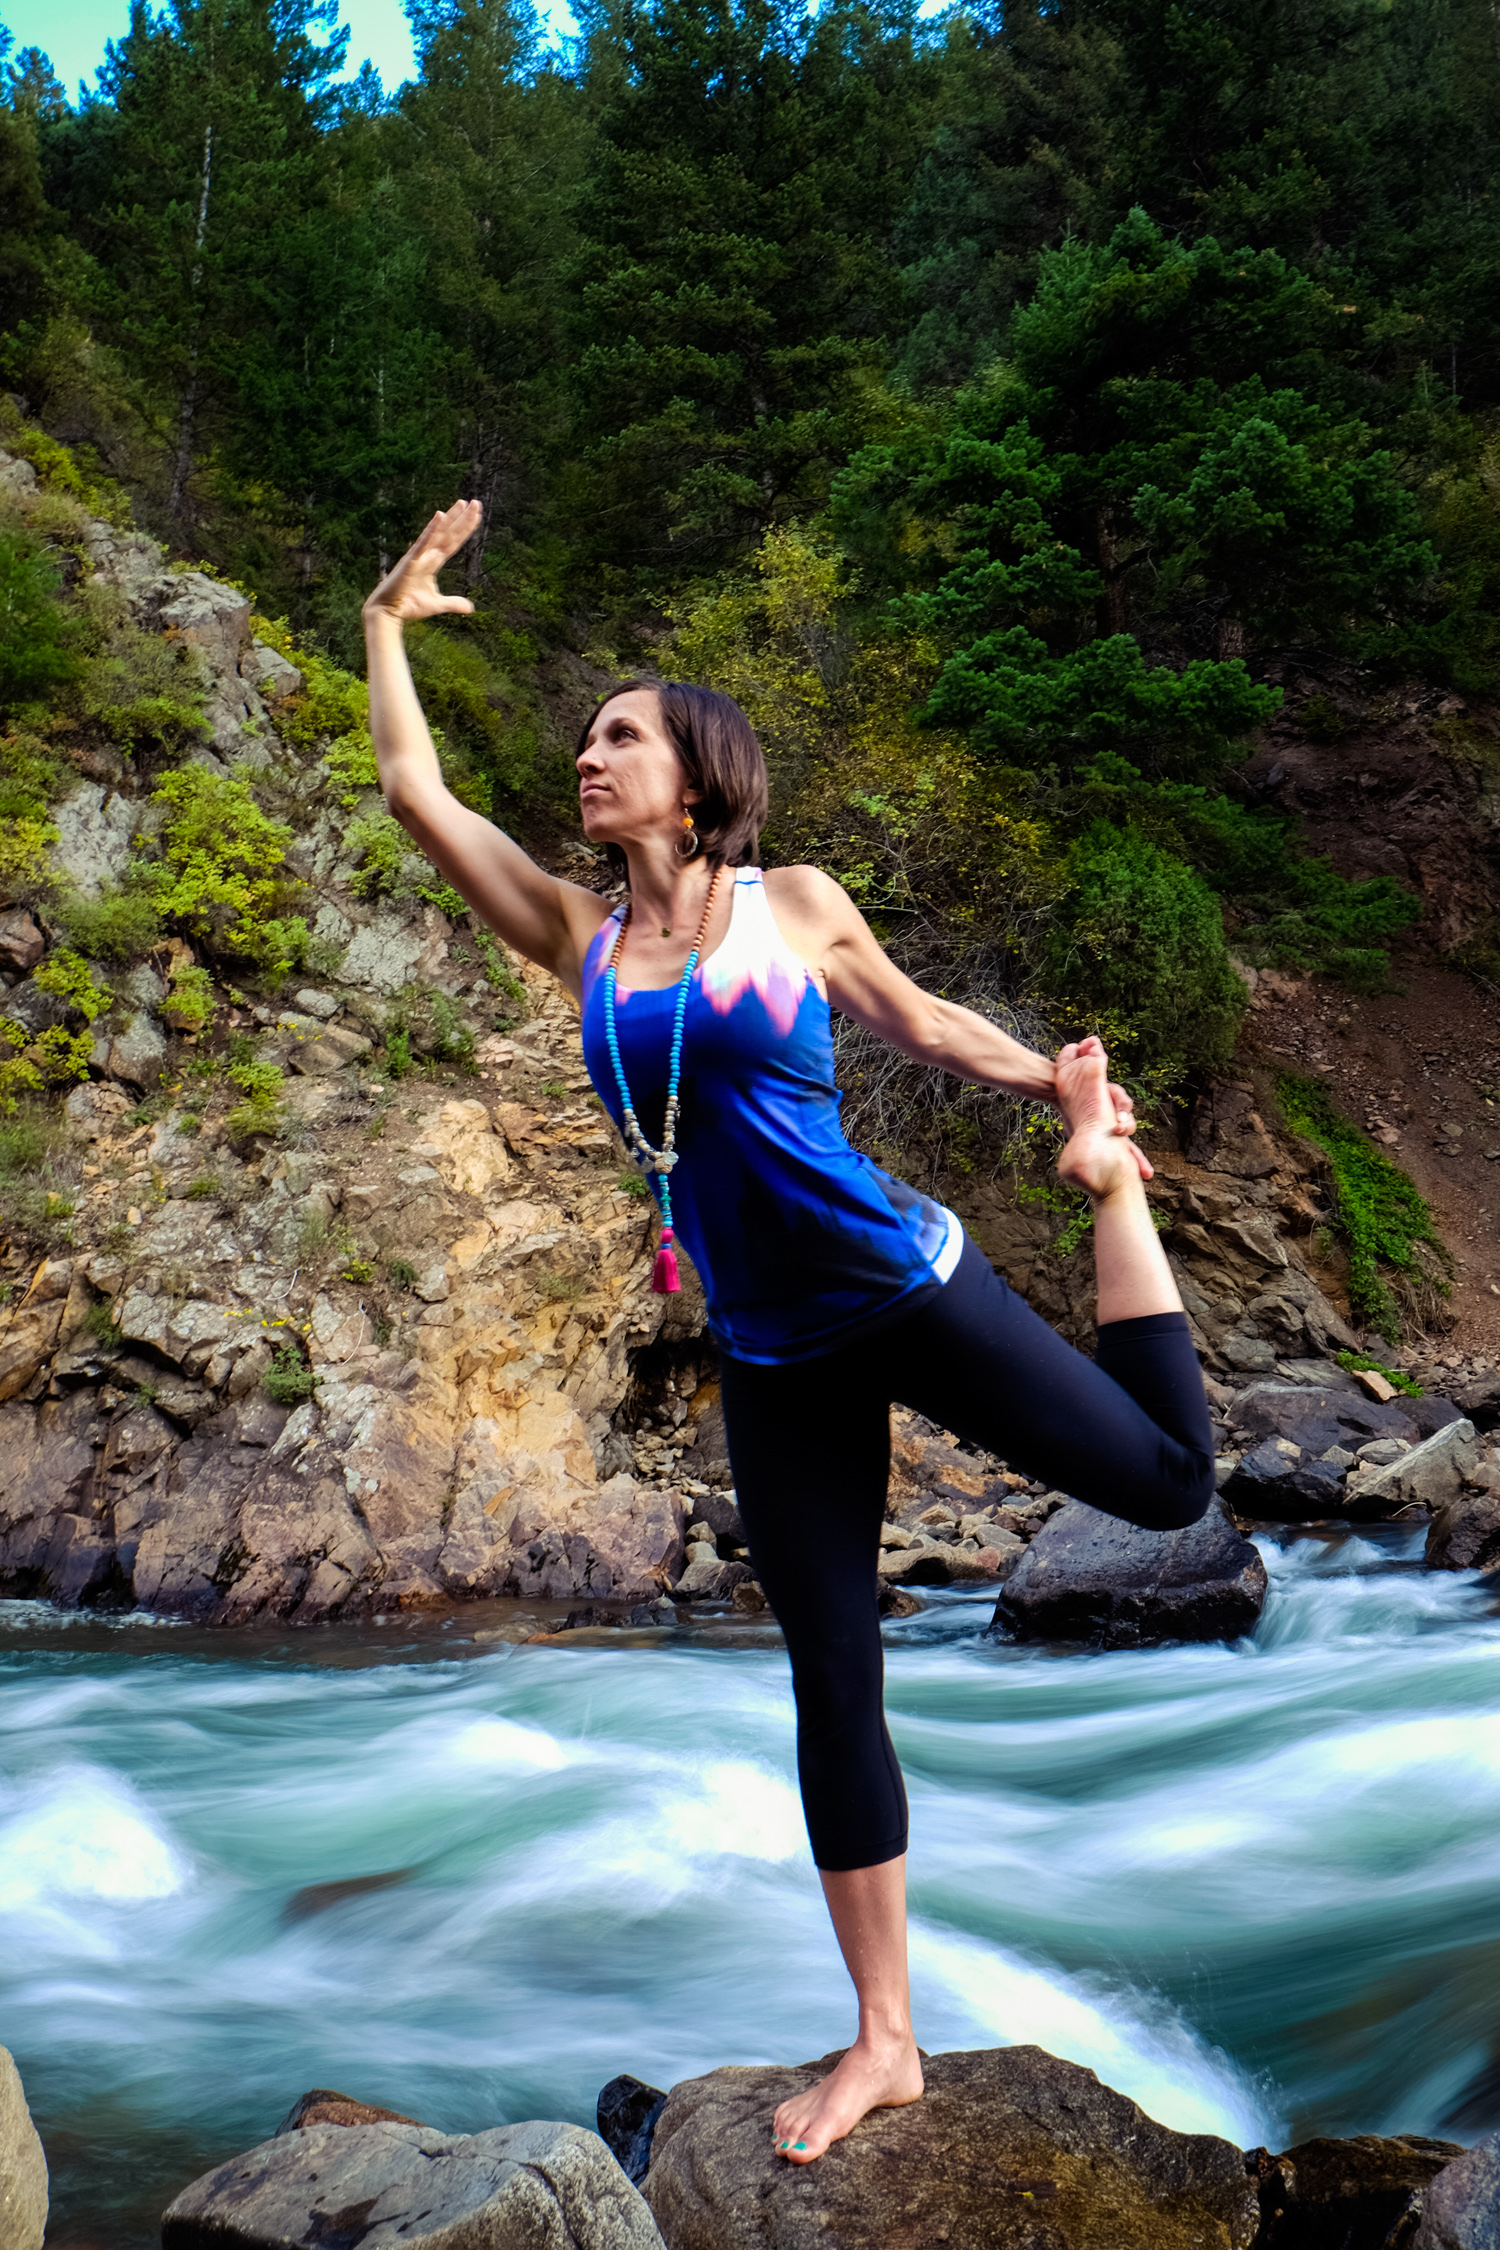 Yoga_Travel_Photographer_015.JPG